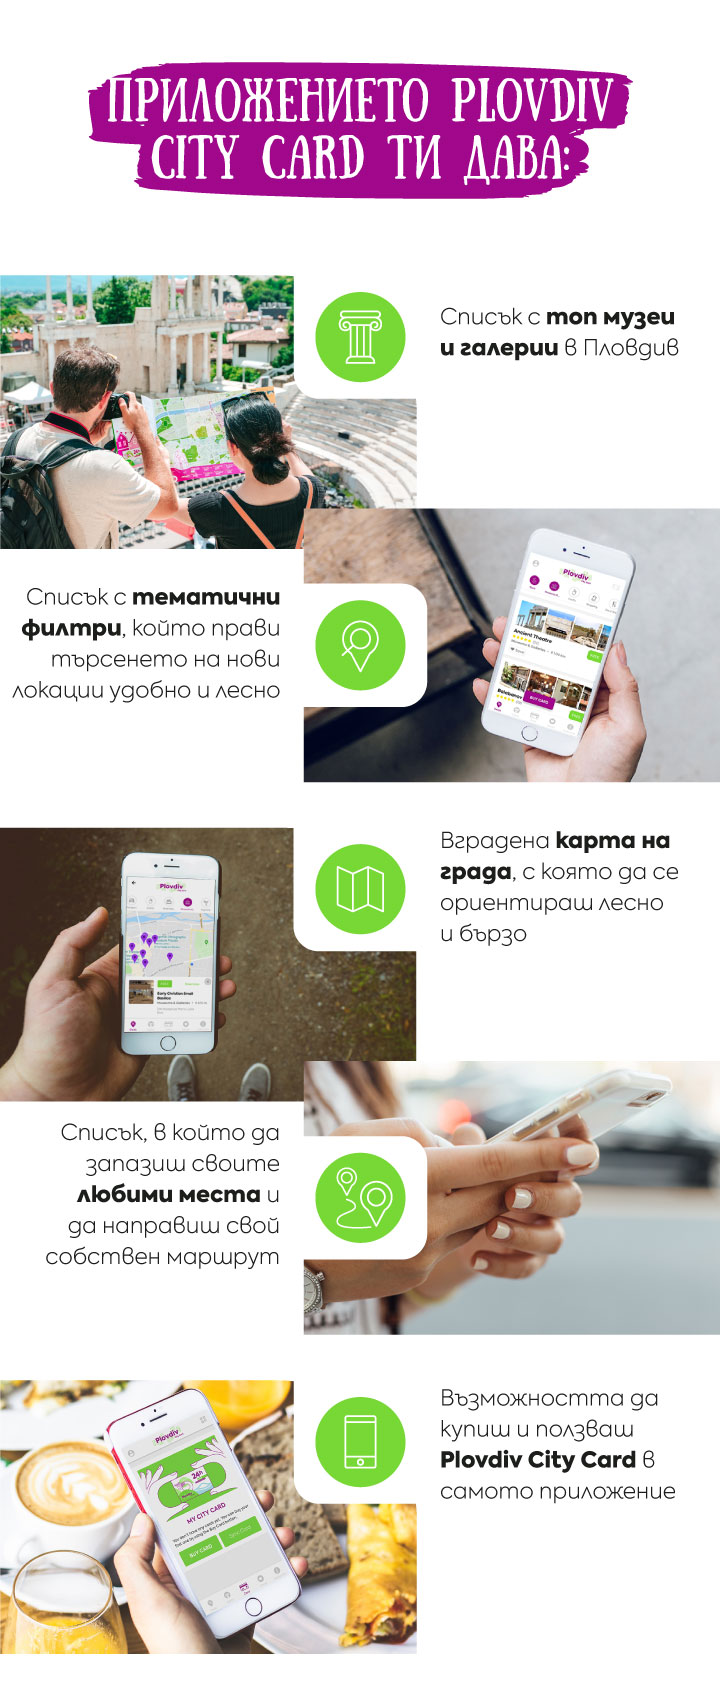 free-plovdiv-city-card-mobile-app-benefits